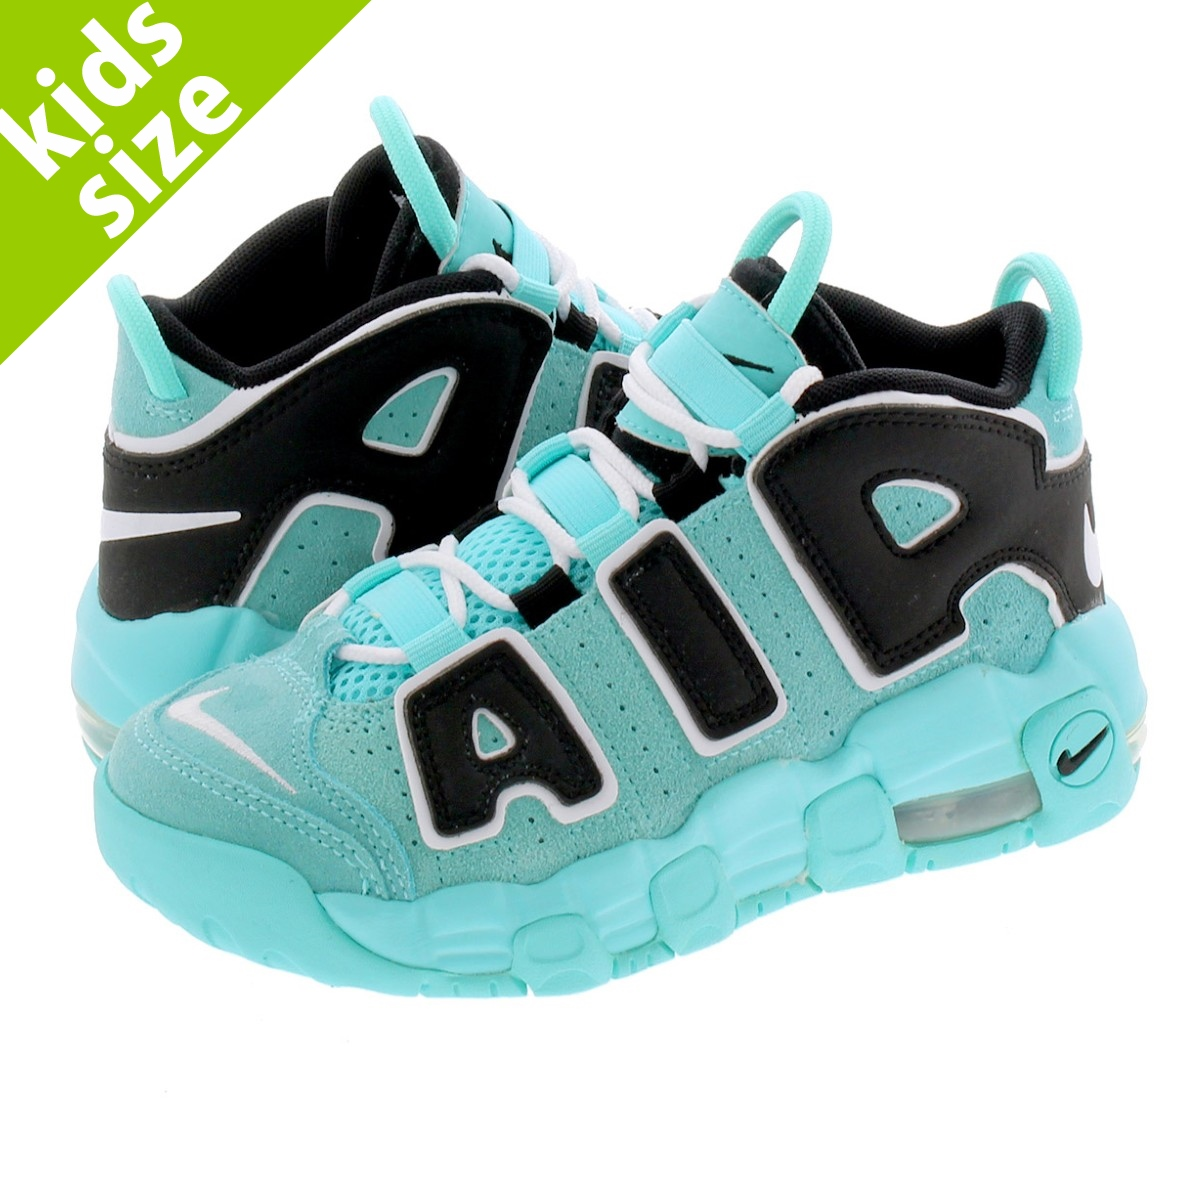 【キッズサイズ】【16.0~22.0cm】 NIKE AIR MORE UPTEMPO PS ナイキ モア アップ テンポ PS LIGHT AQUA/BLACK/WHITE aa1554-403